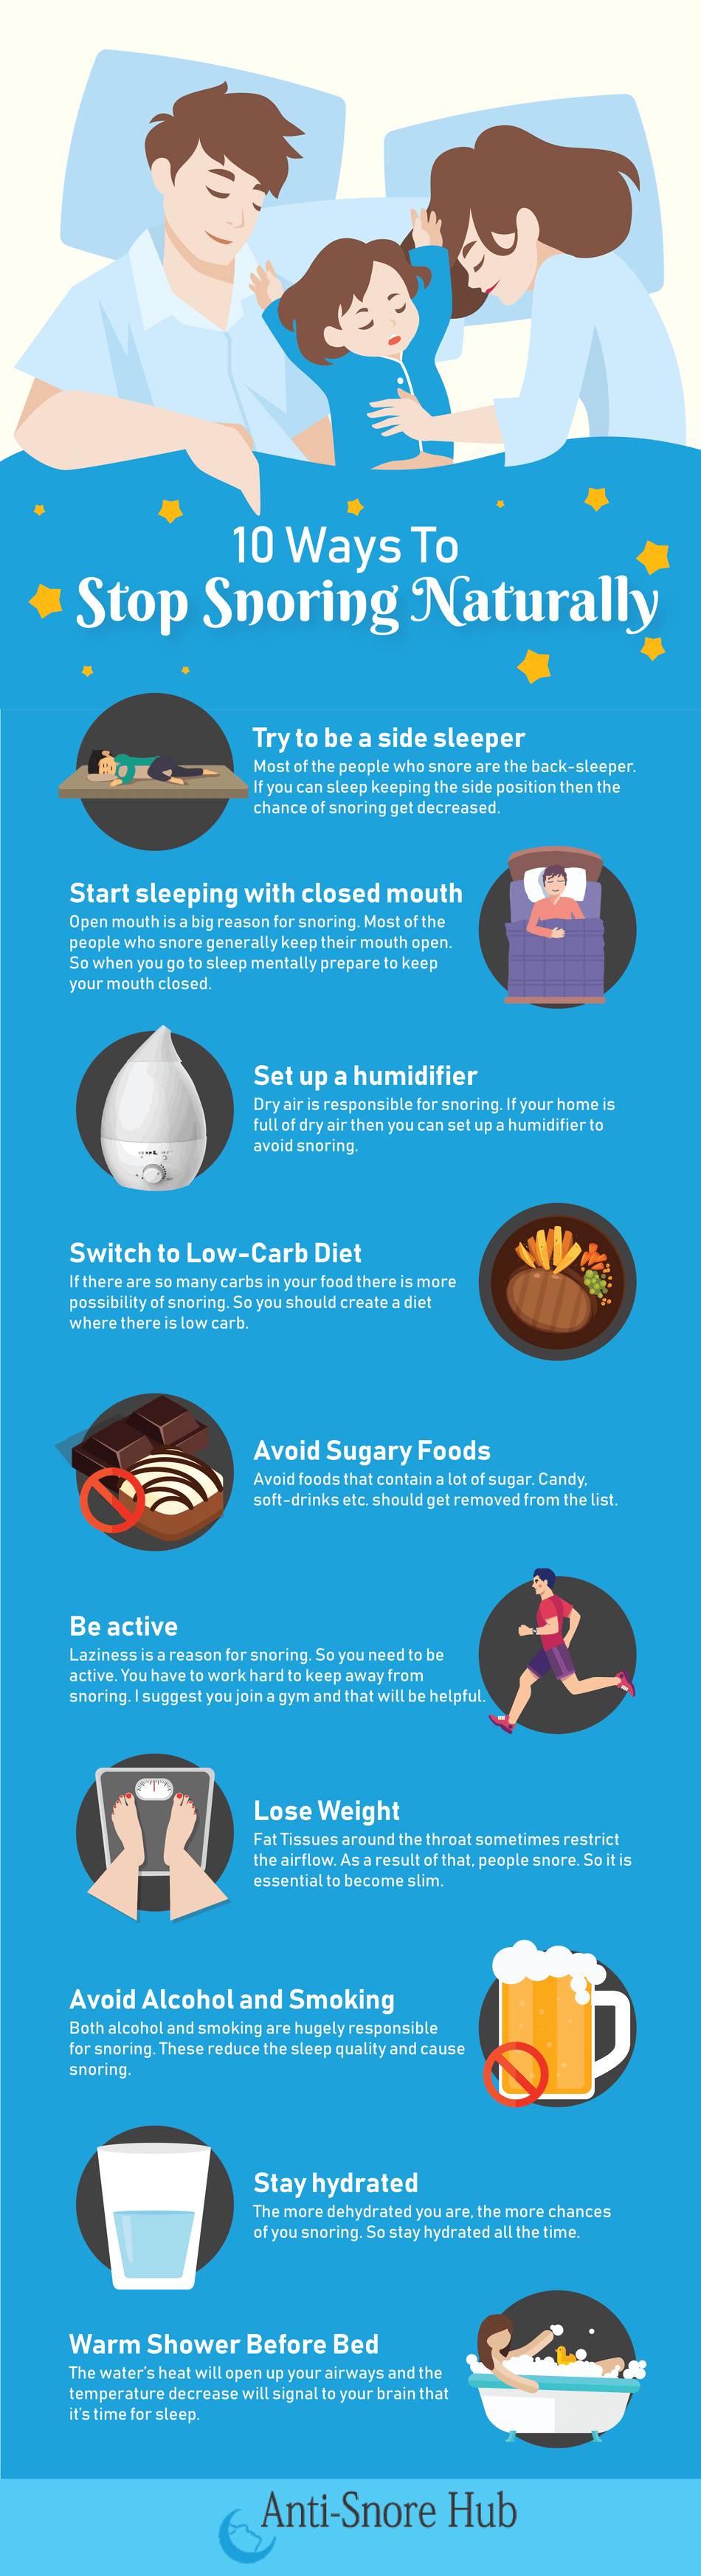 10 ways to stop snoring naturally infographic